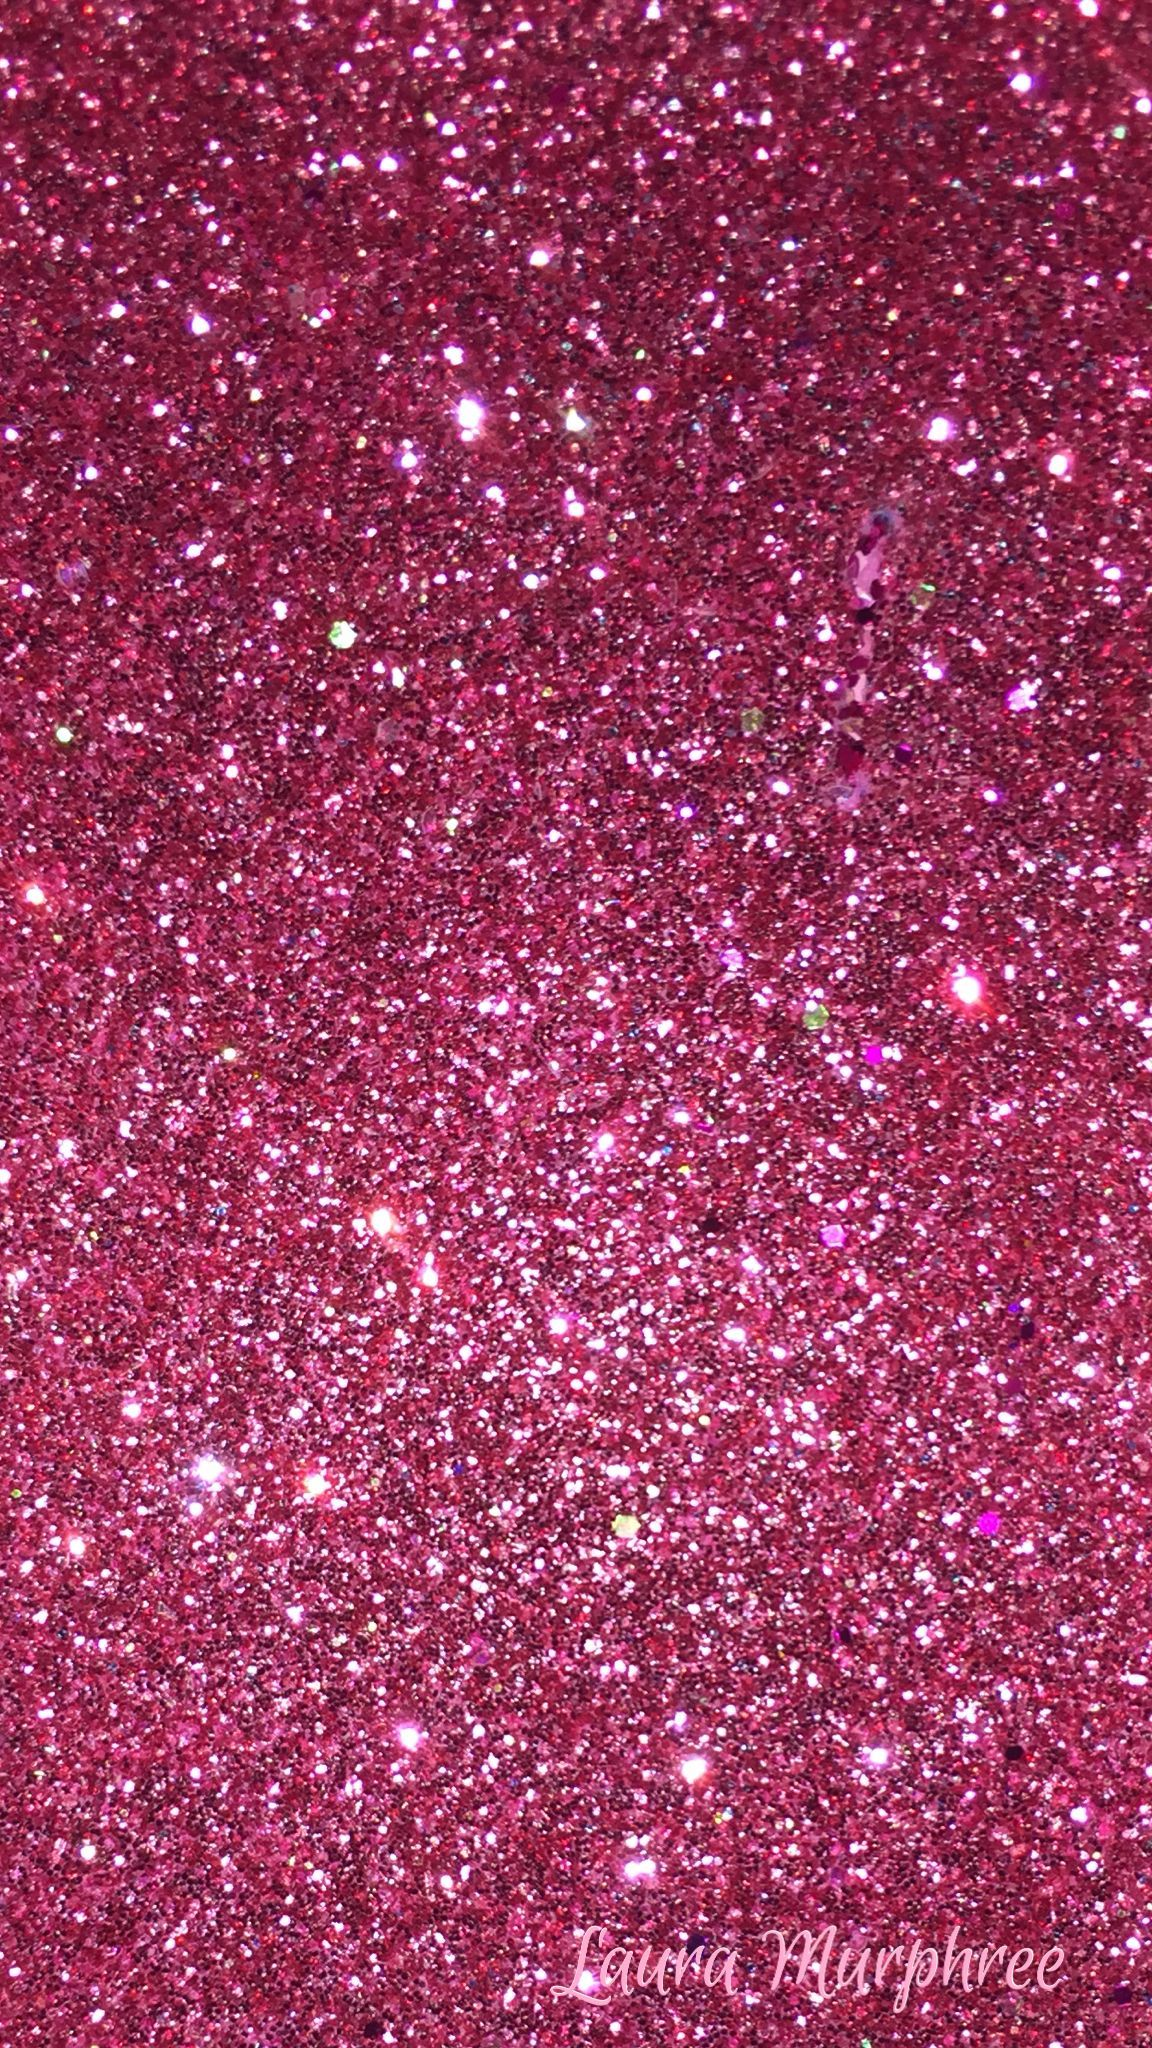 Glitter phone wallpaper pink sparkle background girly pretty hot pink #GlitterFondos | wall ...